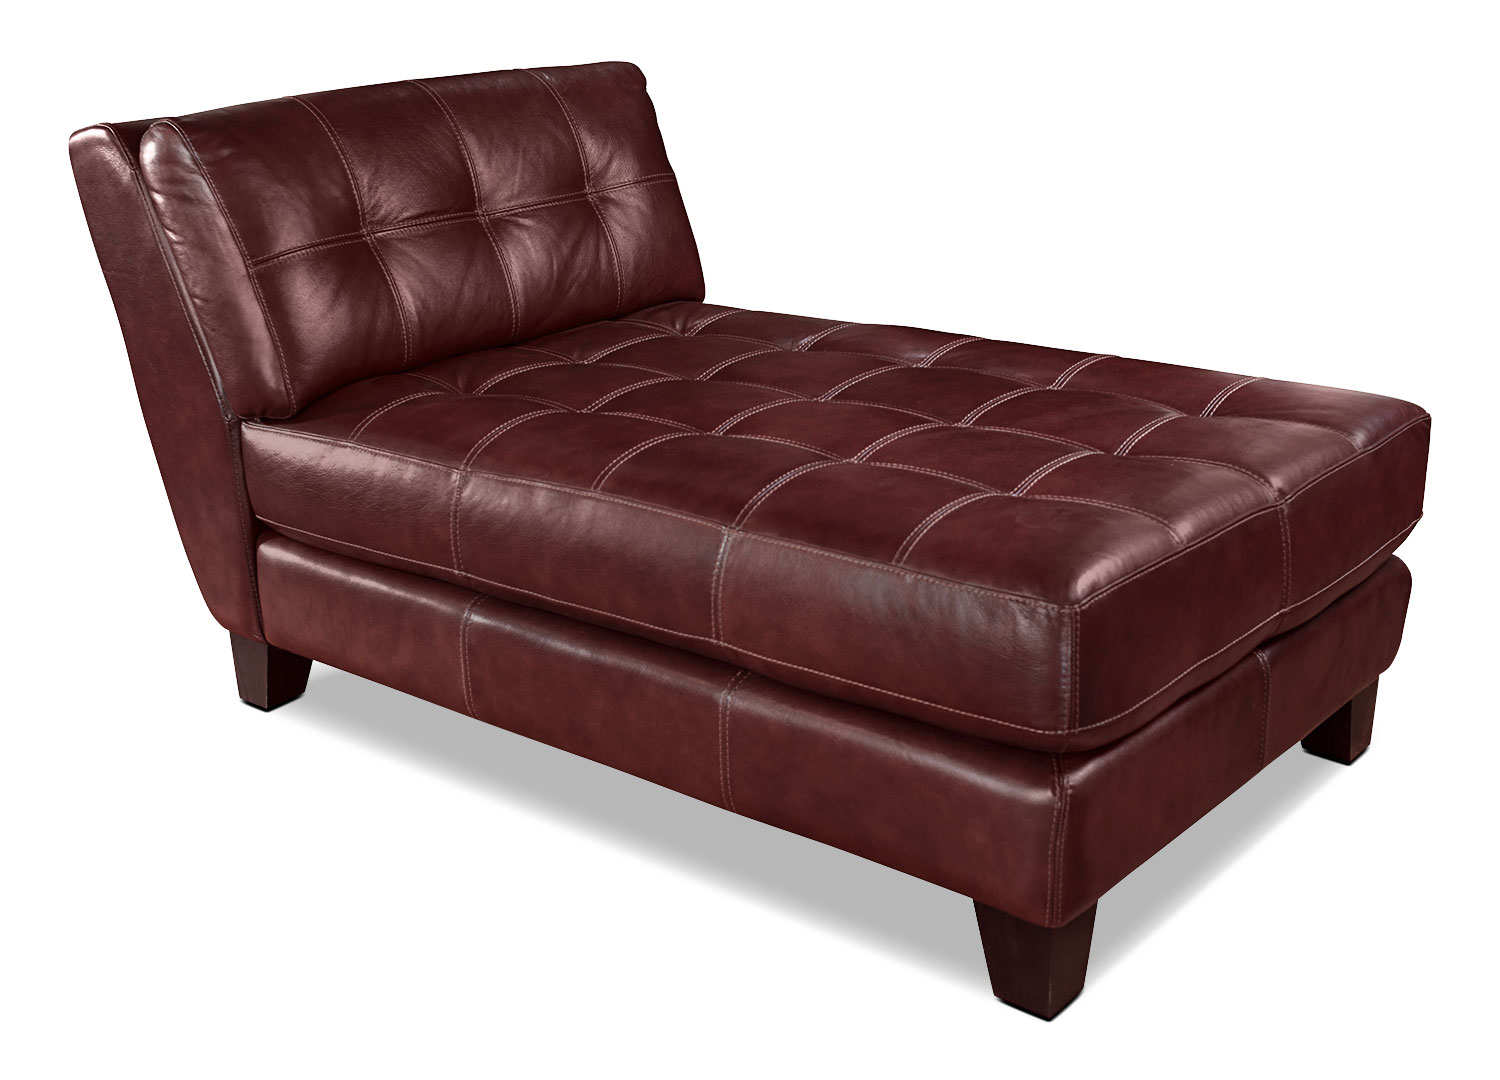 Living Room Furniture - Avenue Genuine Leather Chaise - Red